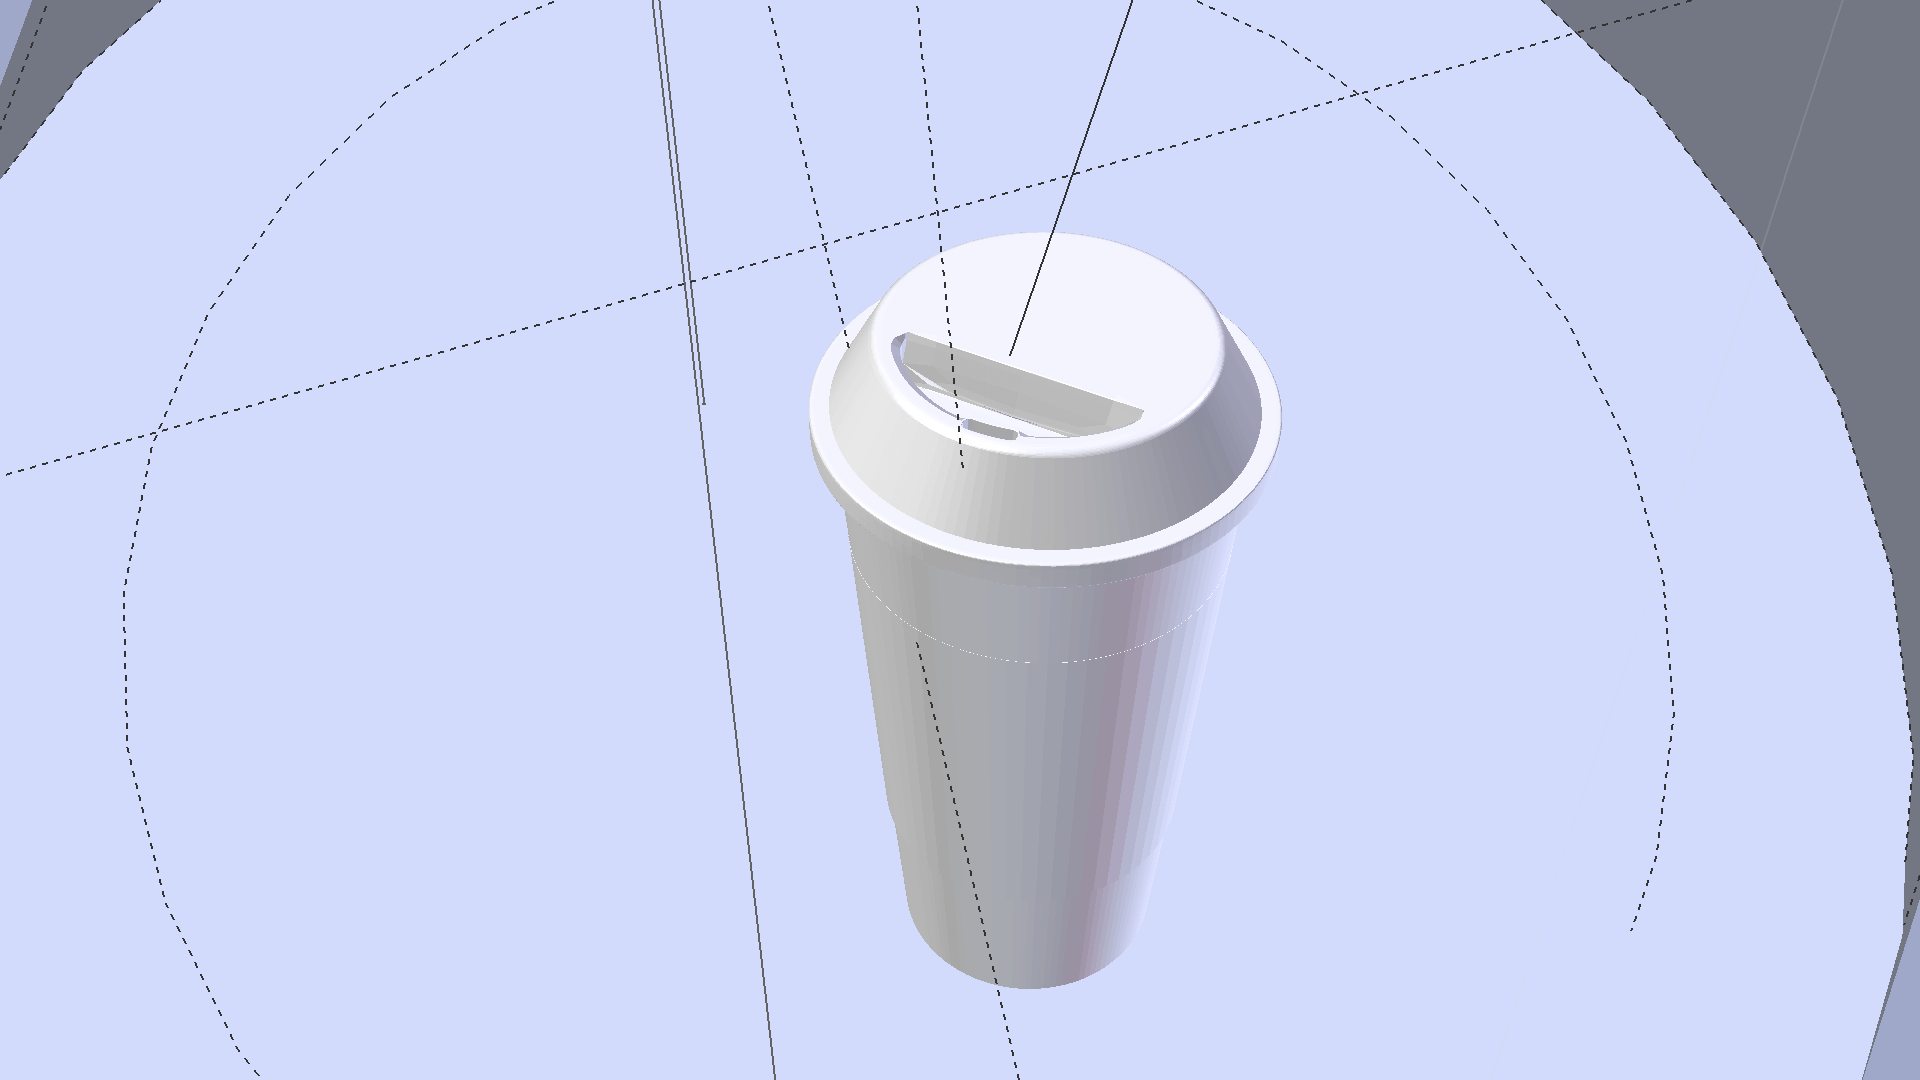 Paper Cup Image 2